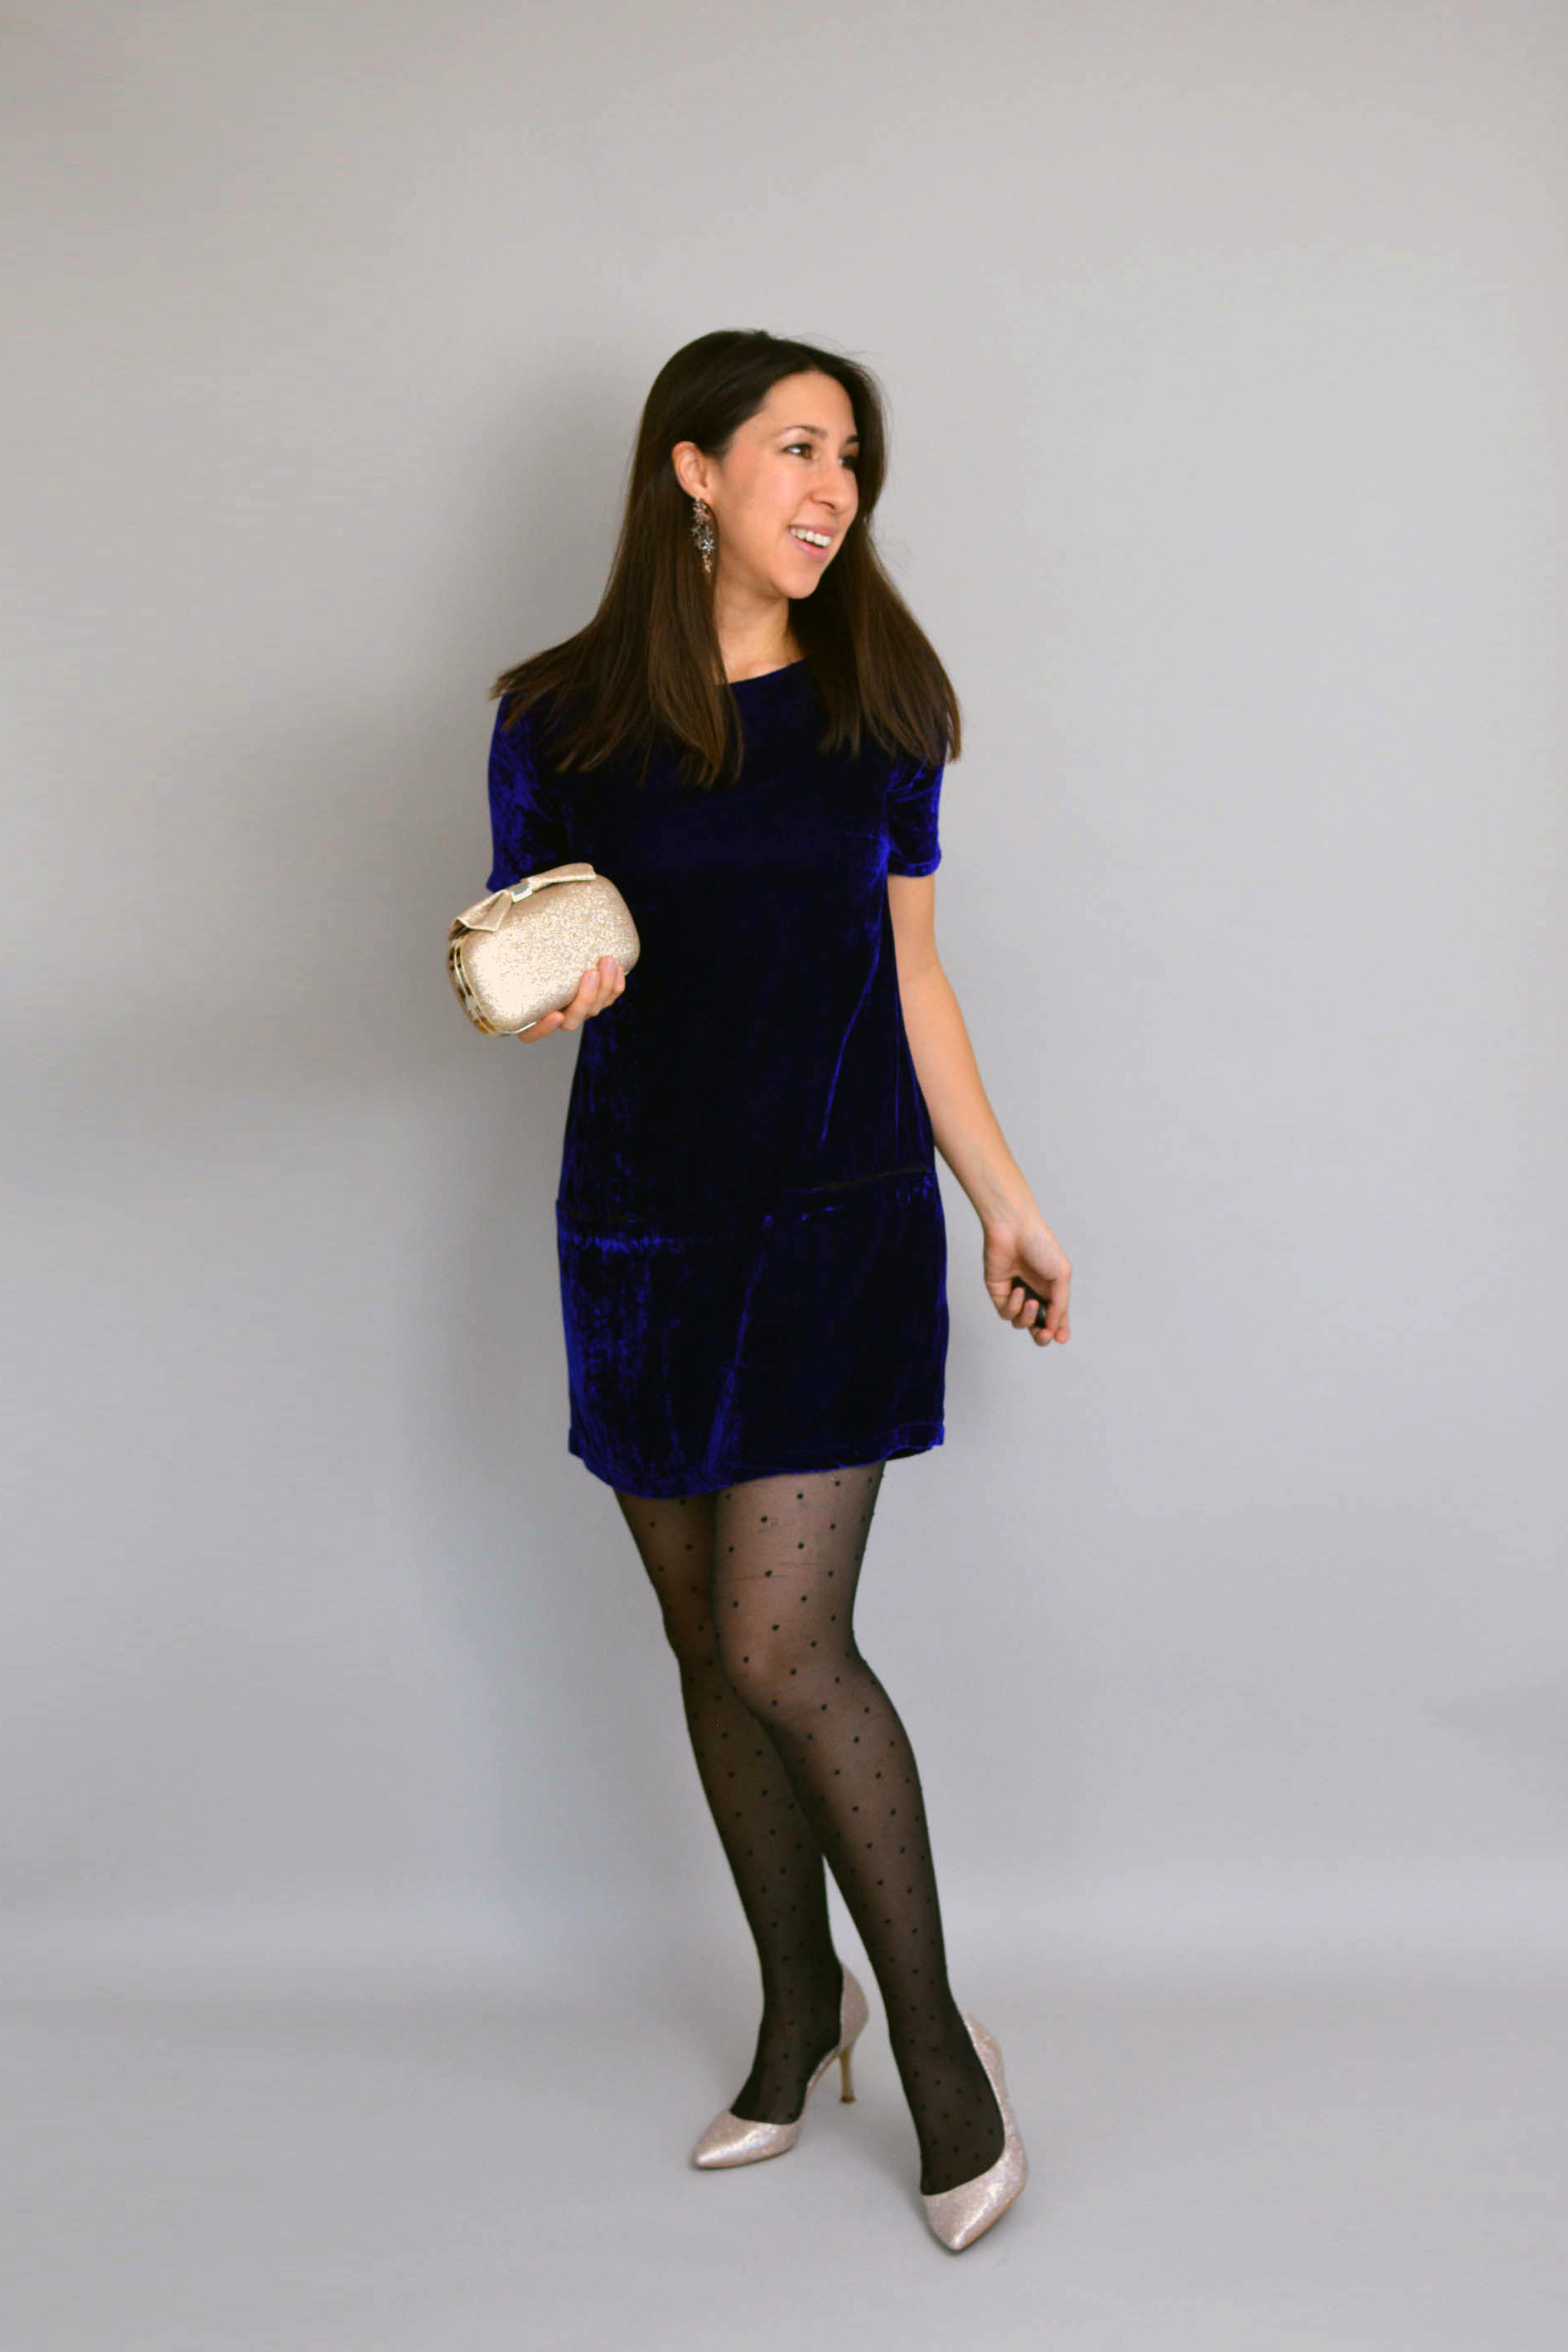 Blue velvet Carnaby dress with gold sparkly clutch, gold sparkly shoes and black tights with black spots